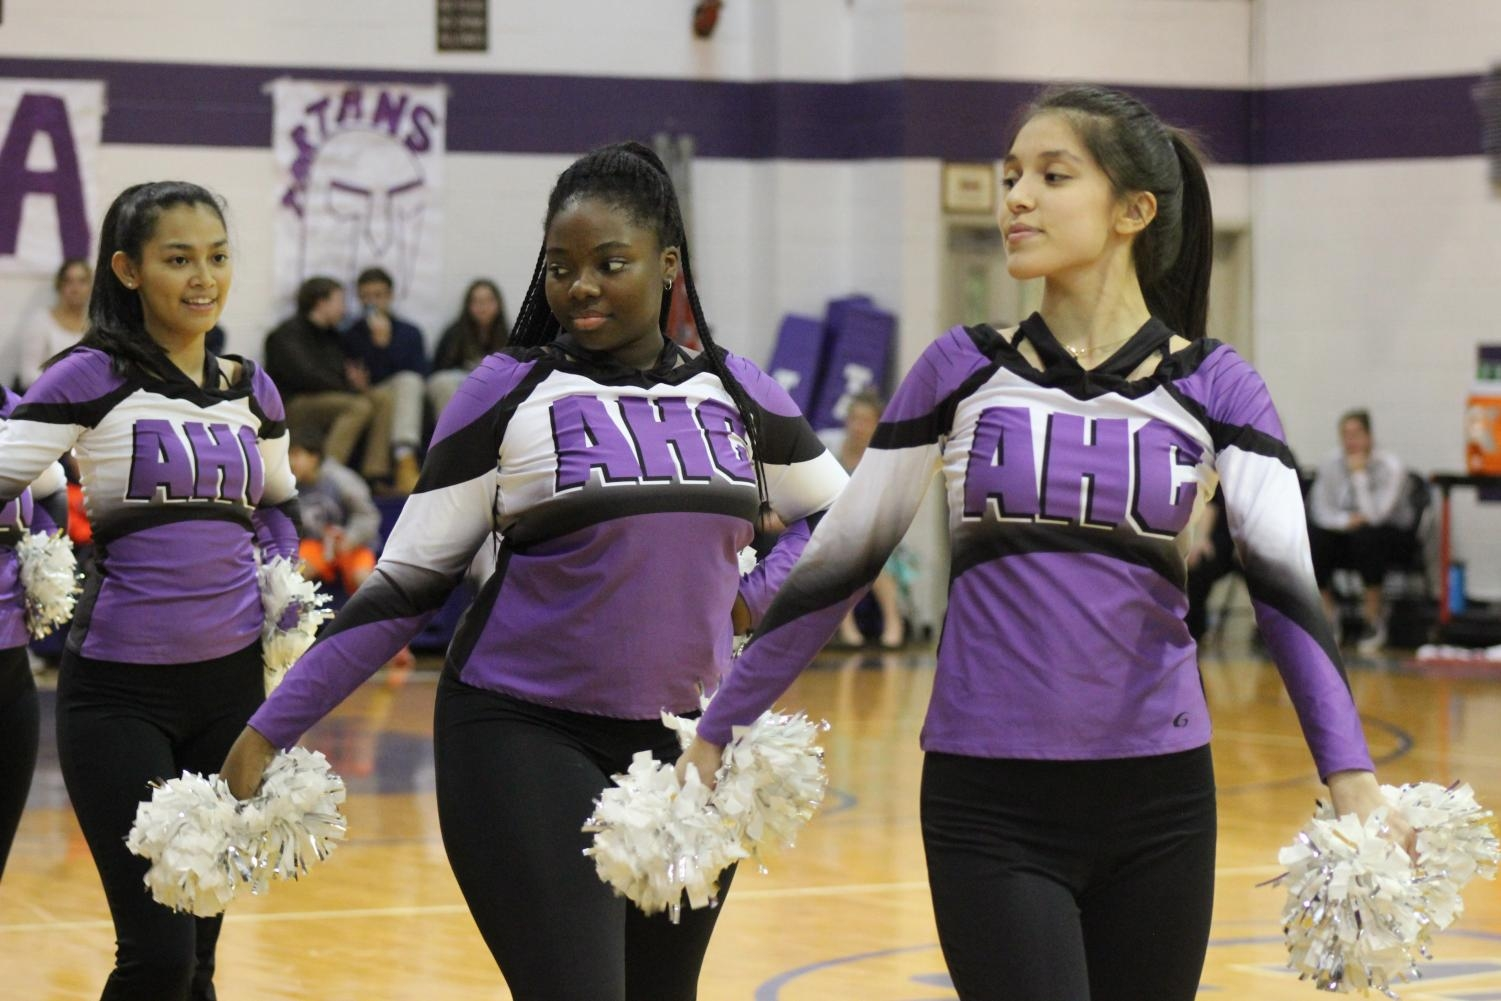 The poms team wows during halftime of the varsity basketball game.